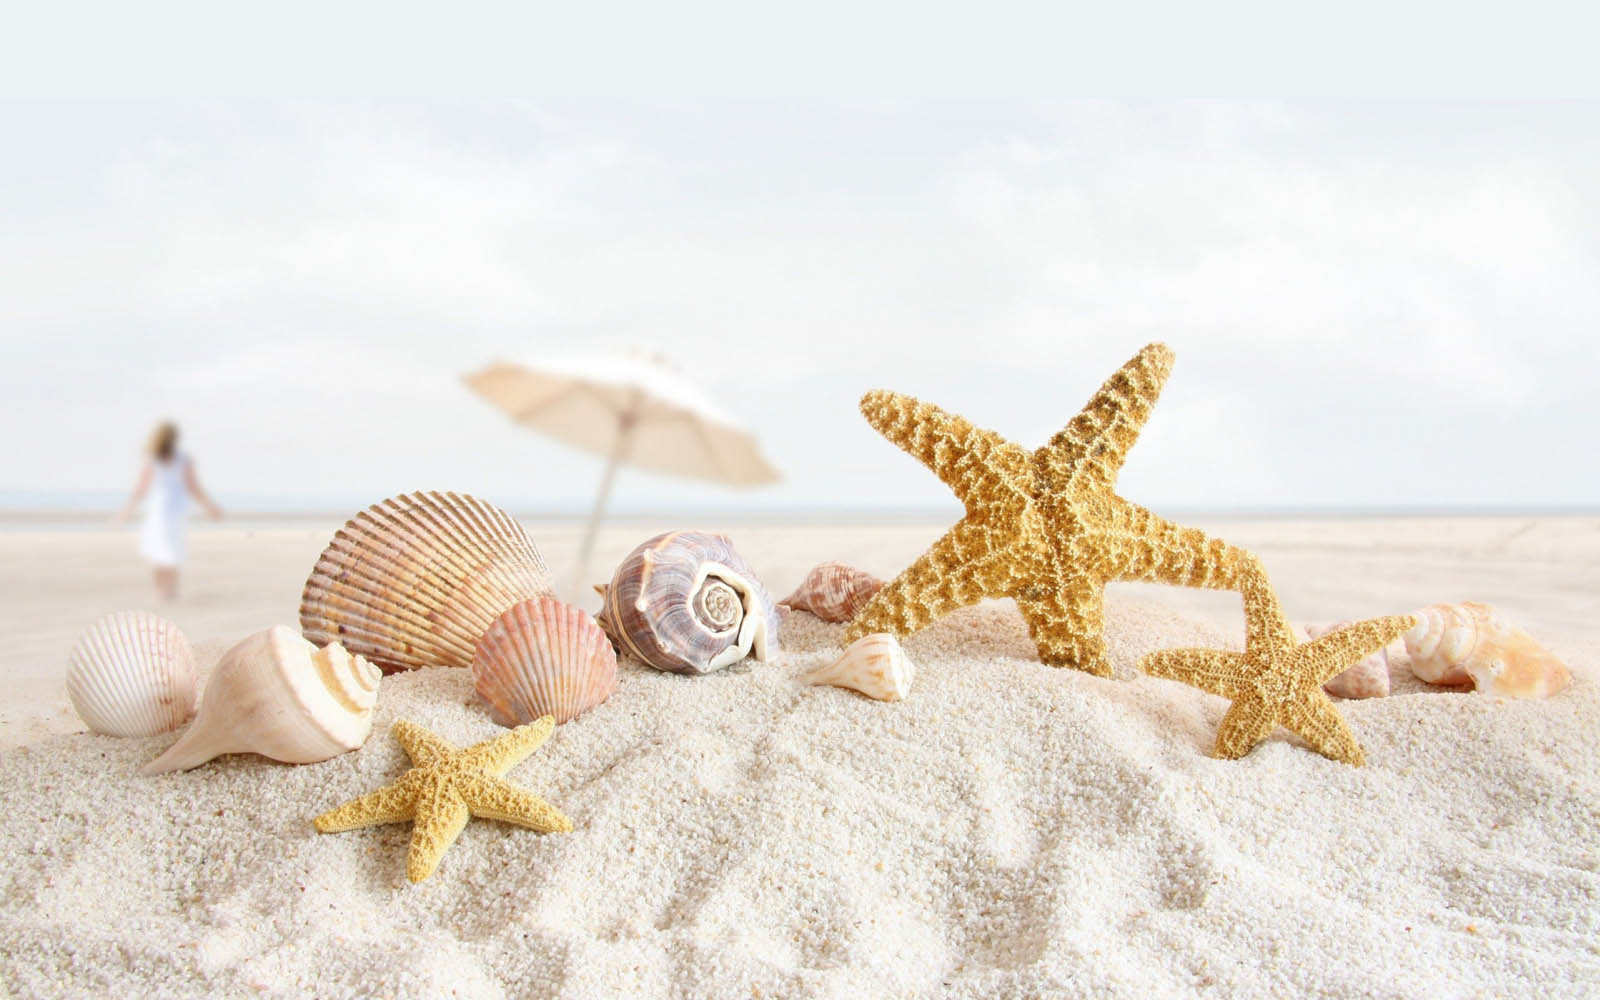 Tag: Starfish Wallpapers, Backgrounds, Photos, Images andPictures for ...